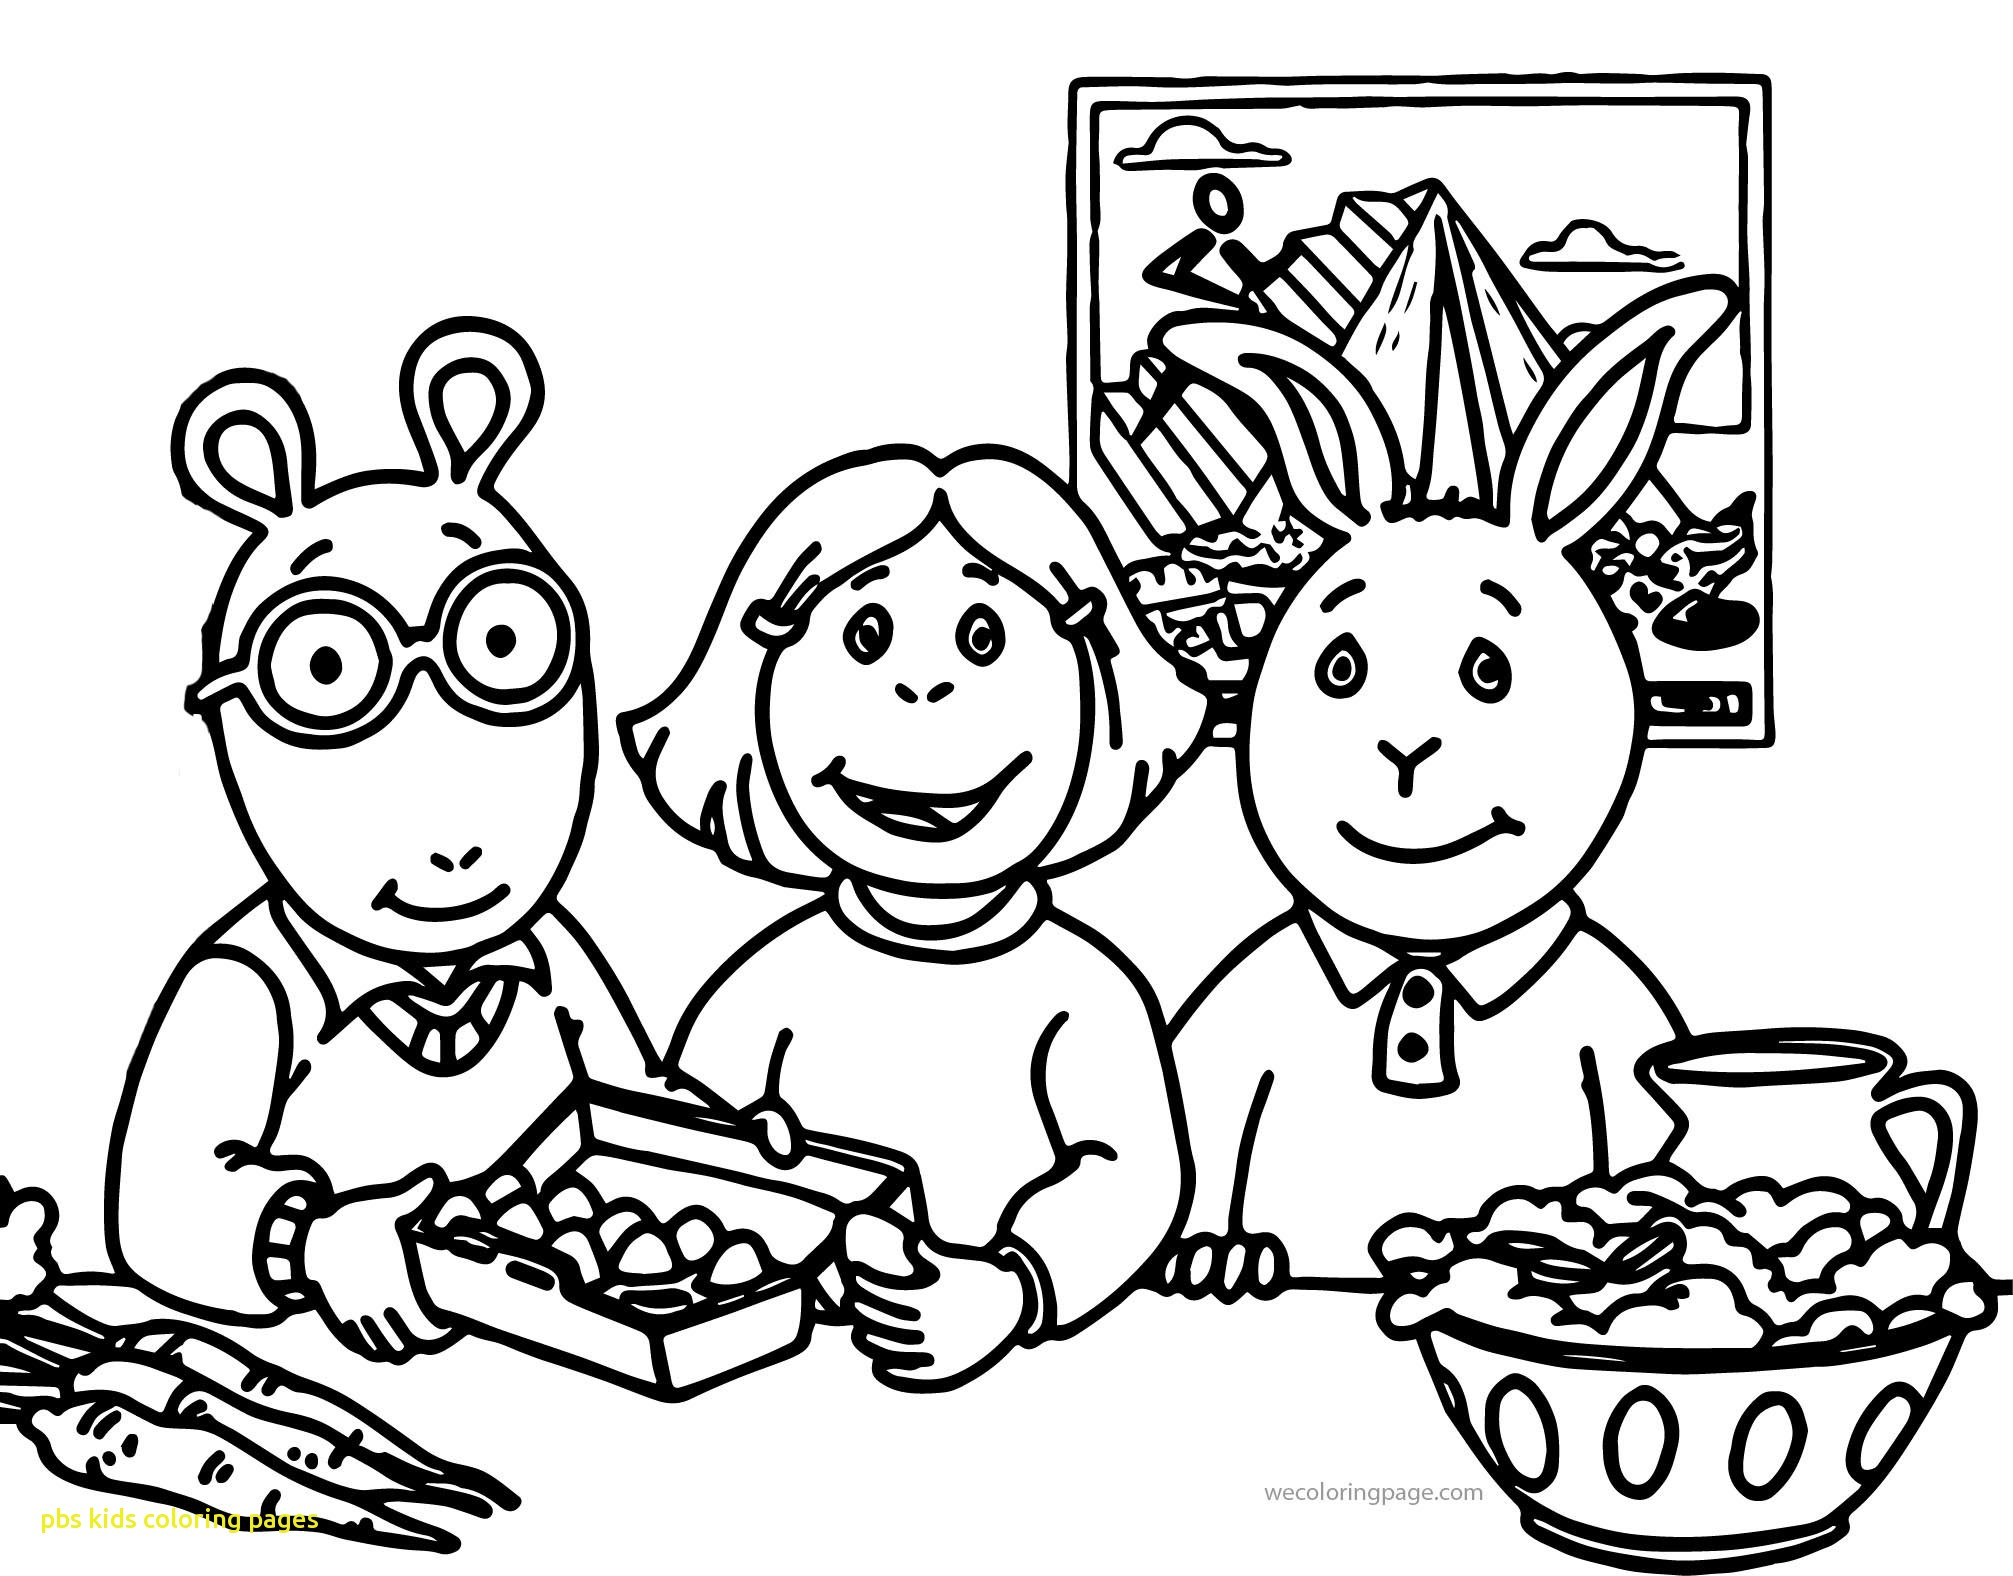 2013x1576 Pbs Kids Coloring Pages With Daniel Tiger